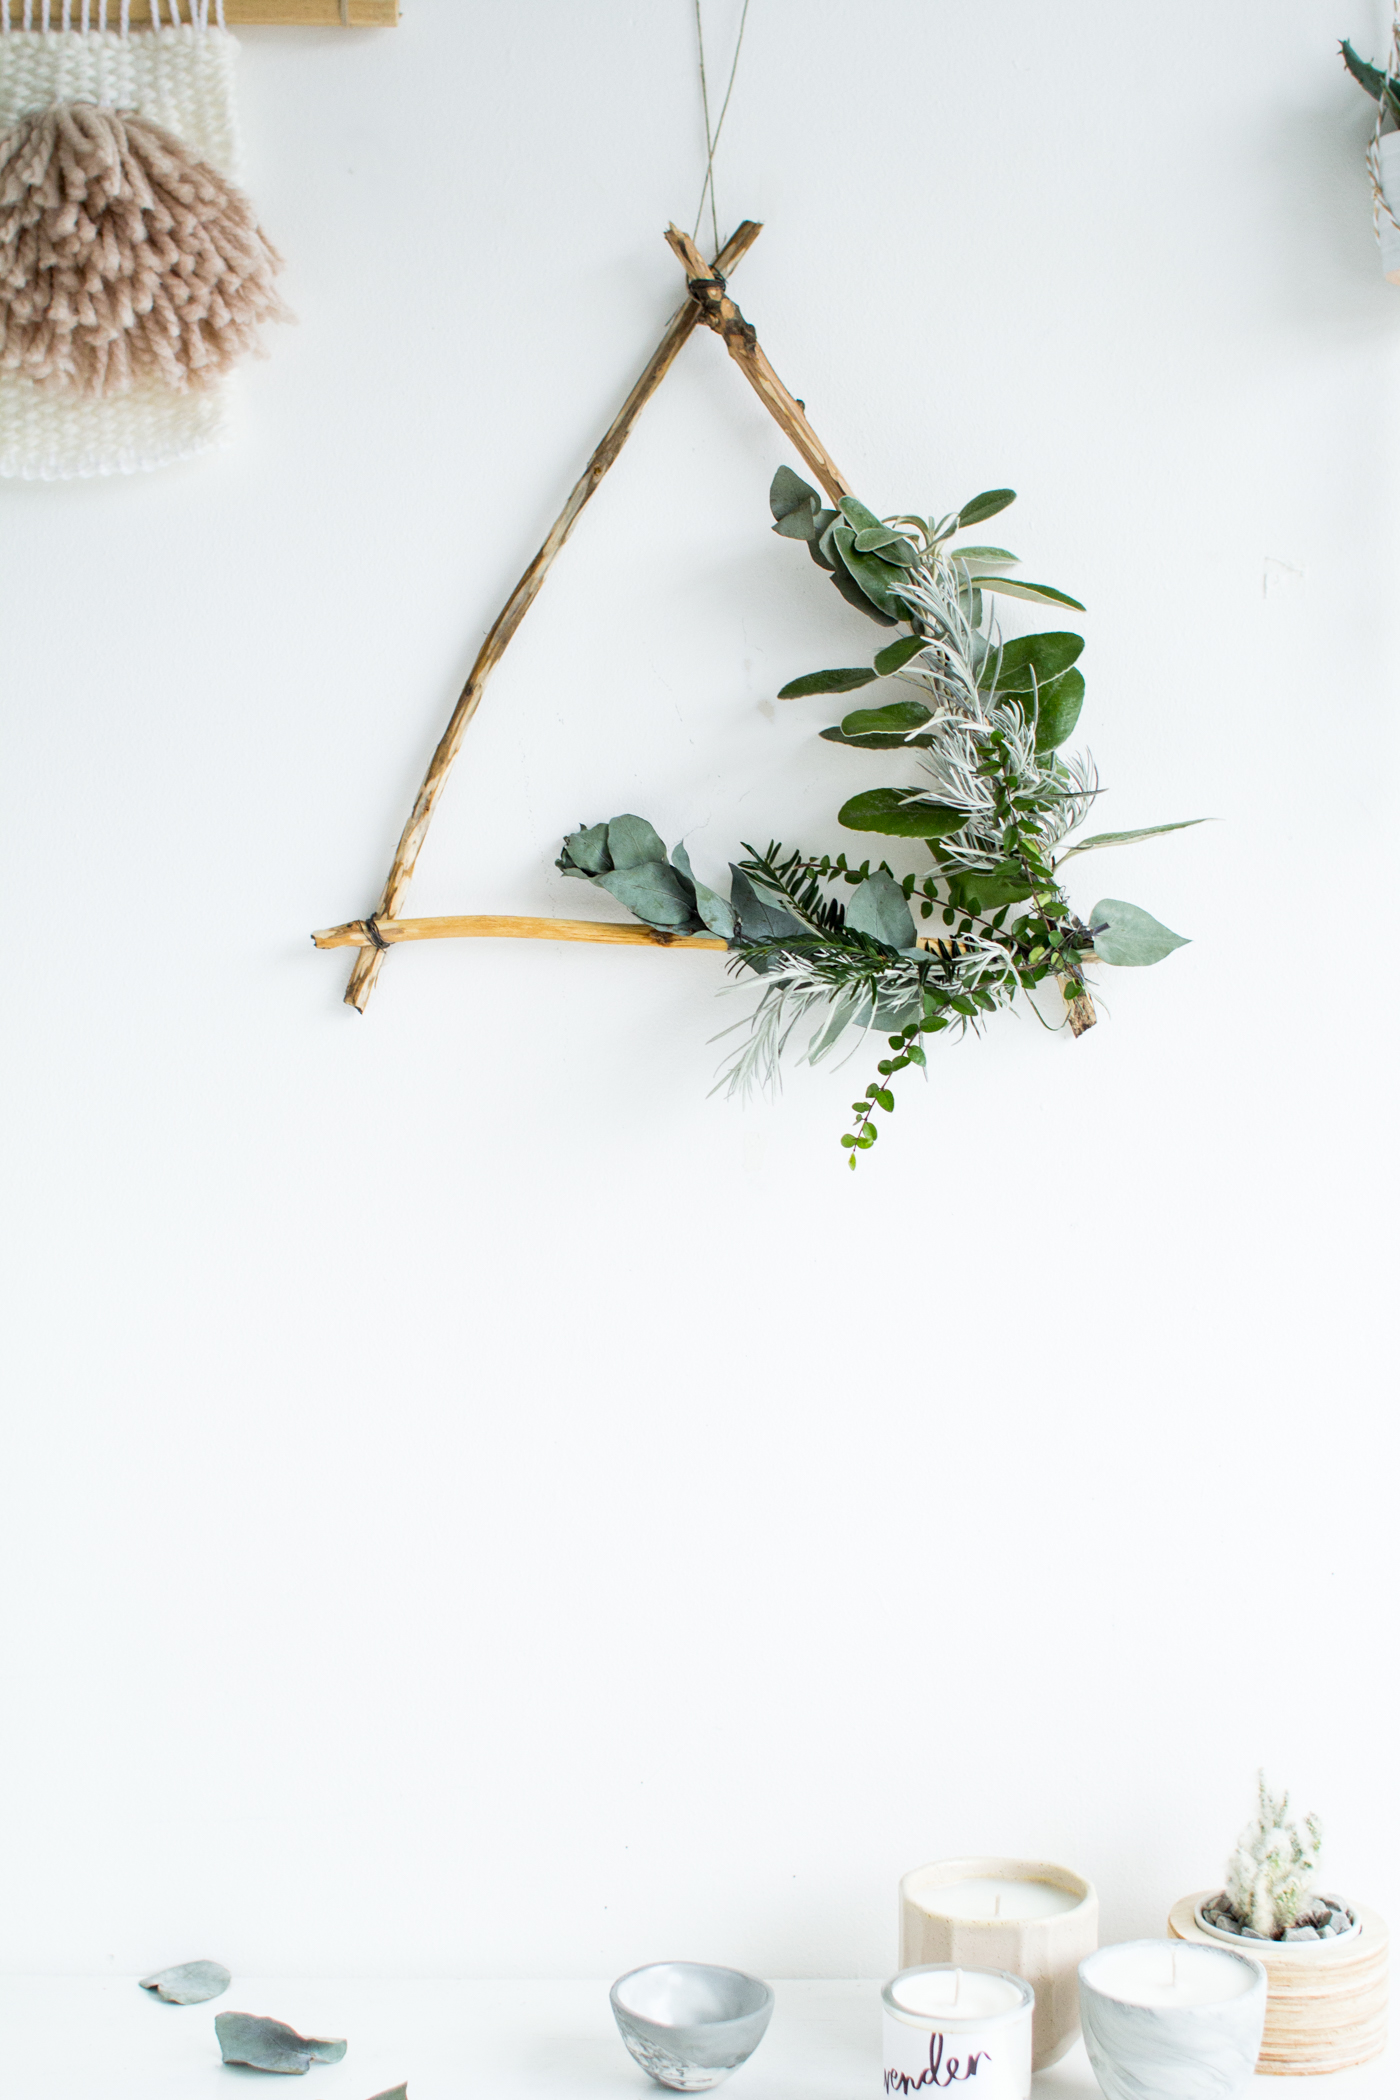 DIY Foraged Triangle Christmas Wreath